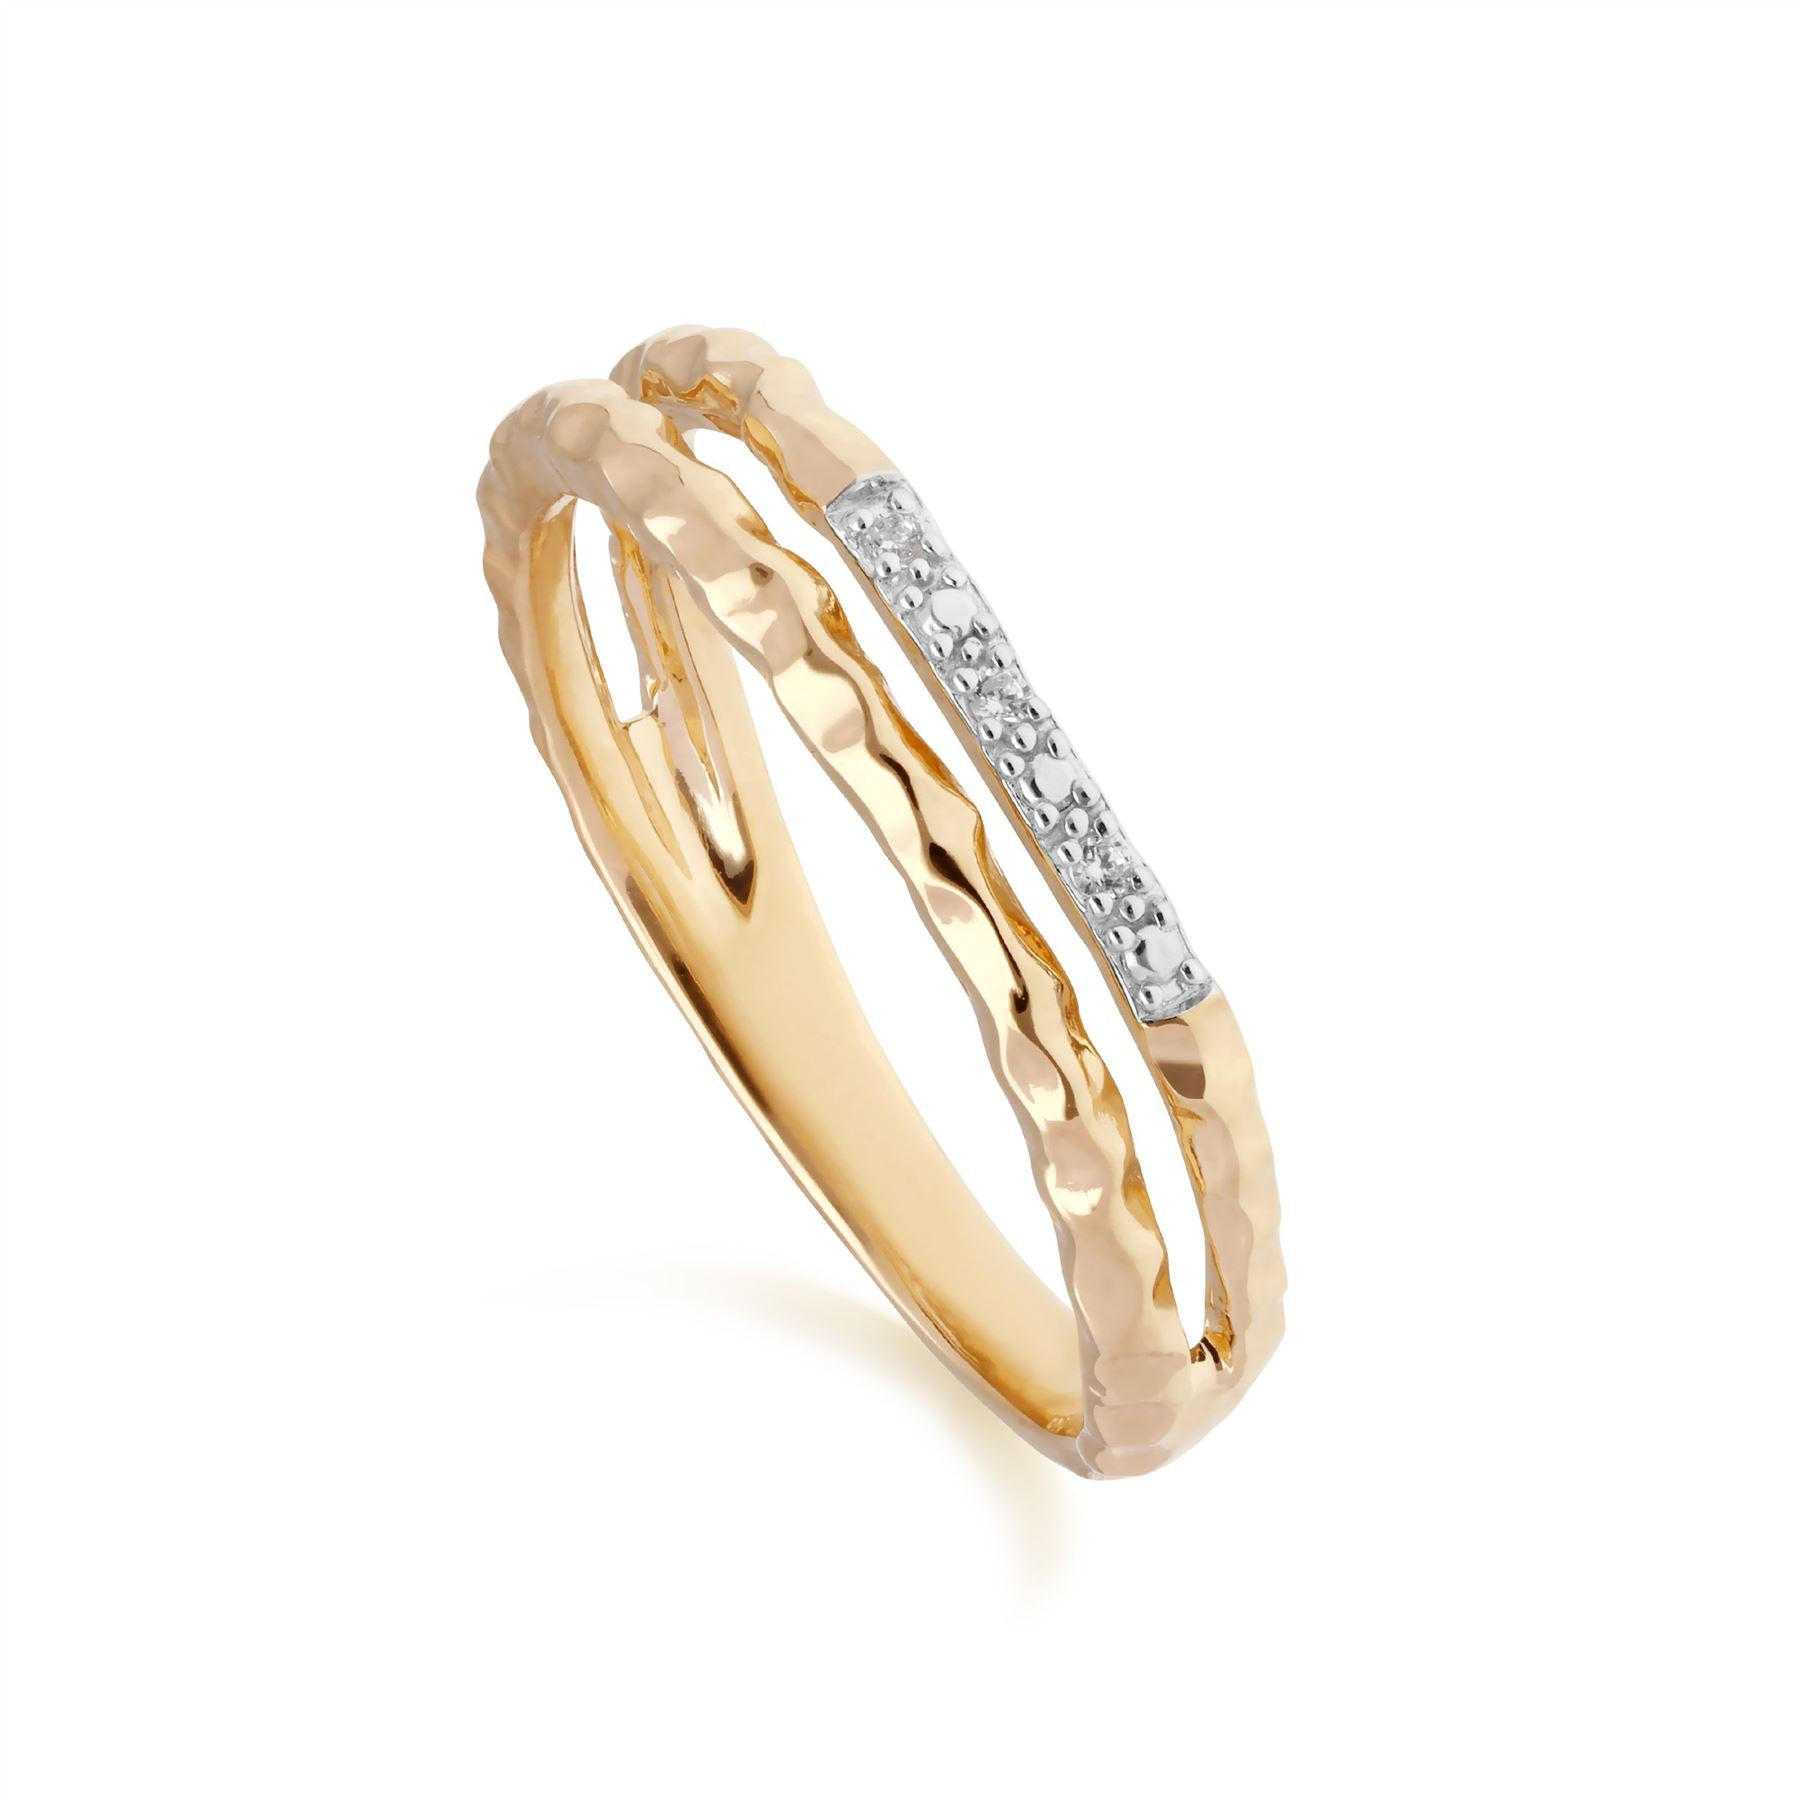 Image of            Diamond Pavé Hammered Double Band Ring in 9ct Yellow Gold